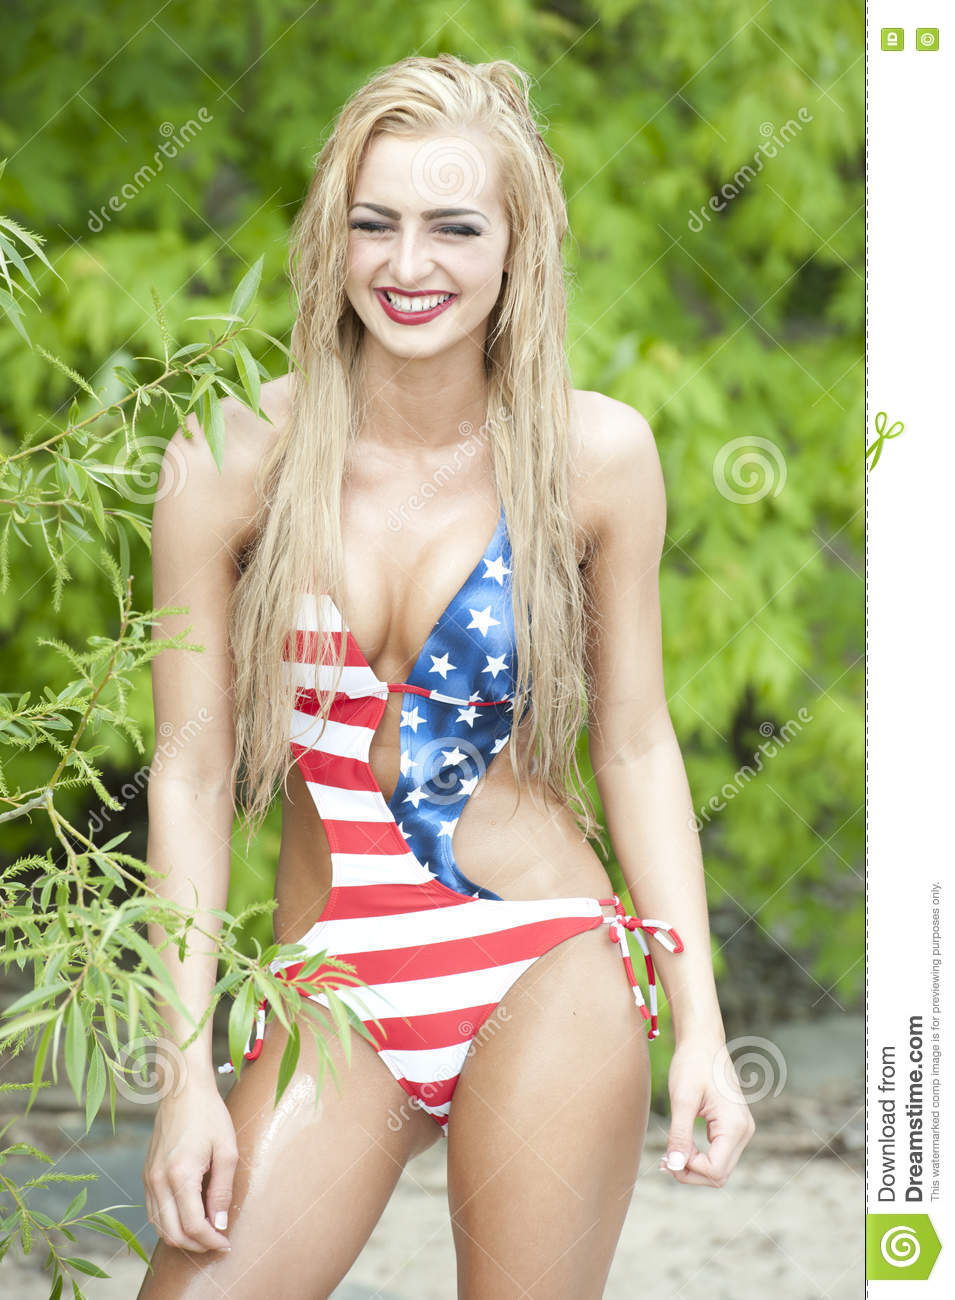 Gorgeous Blonde Laughing Wearing American Flag Swimsuit